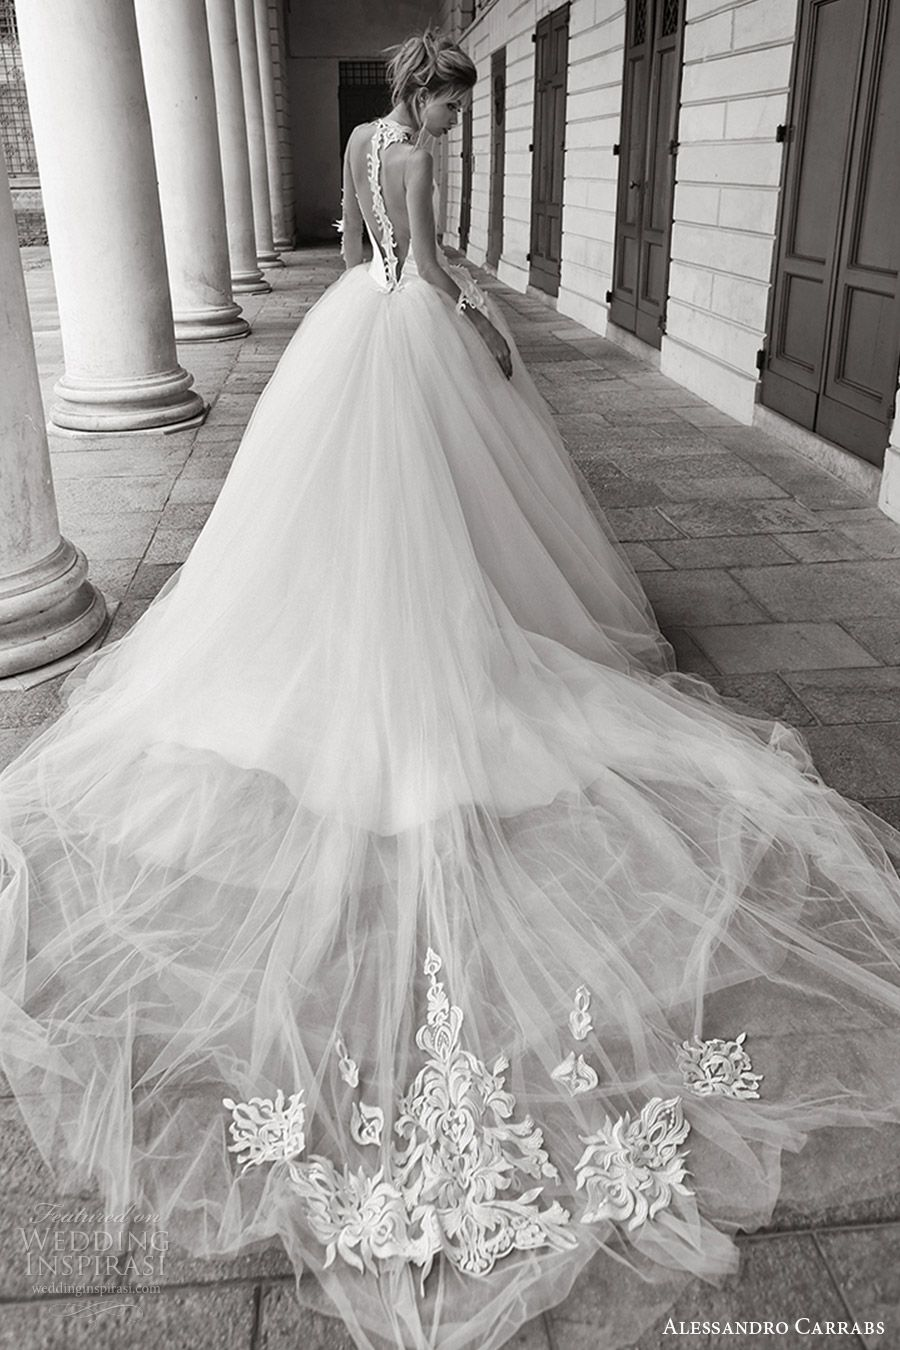 Wedding dress with collar  Alessandro Carrabs  Wedding Dresses u ucPalcoscenicoud Couture